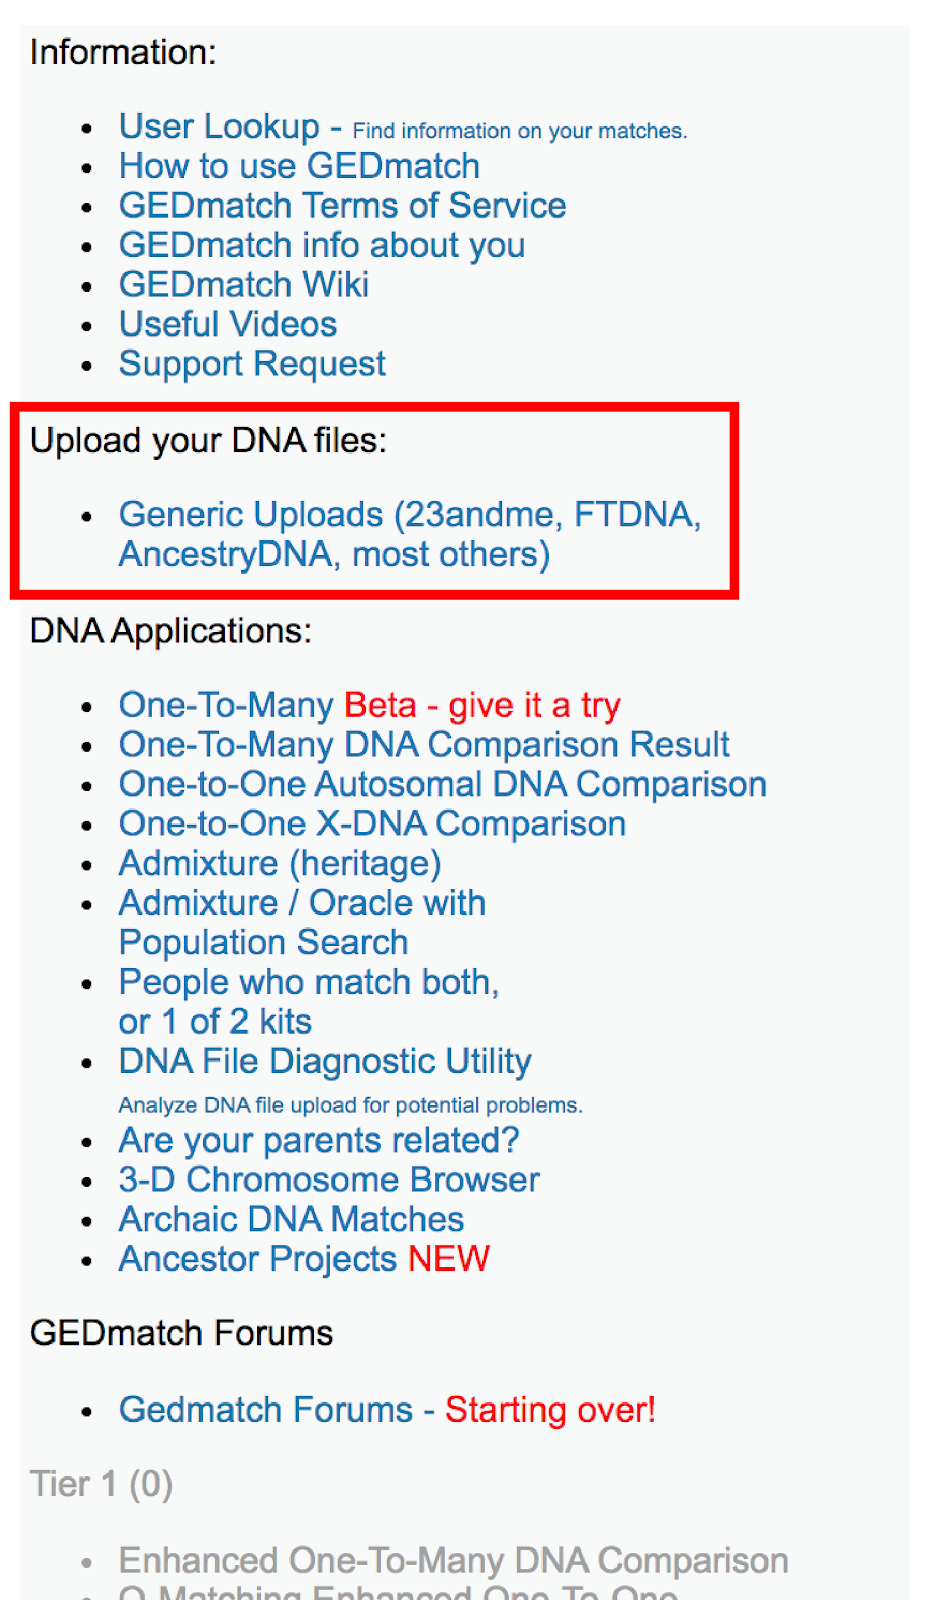 On the right side of the GEDmatch home page is the index that includes a link to upload your DNA files.